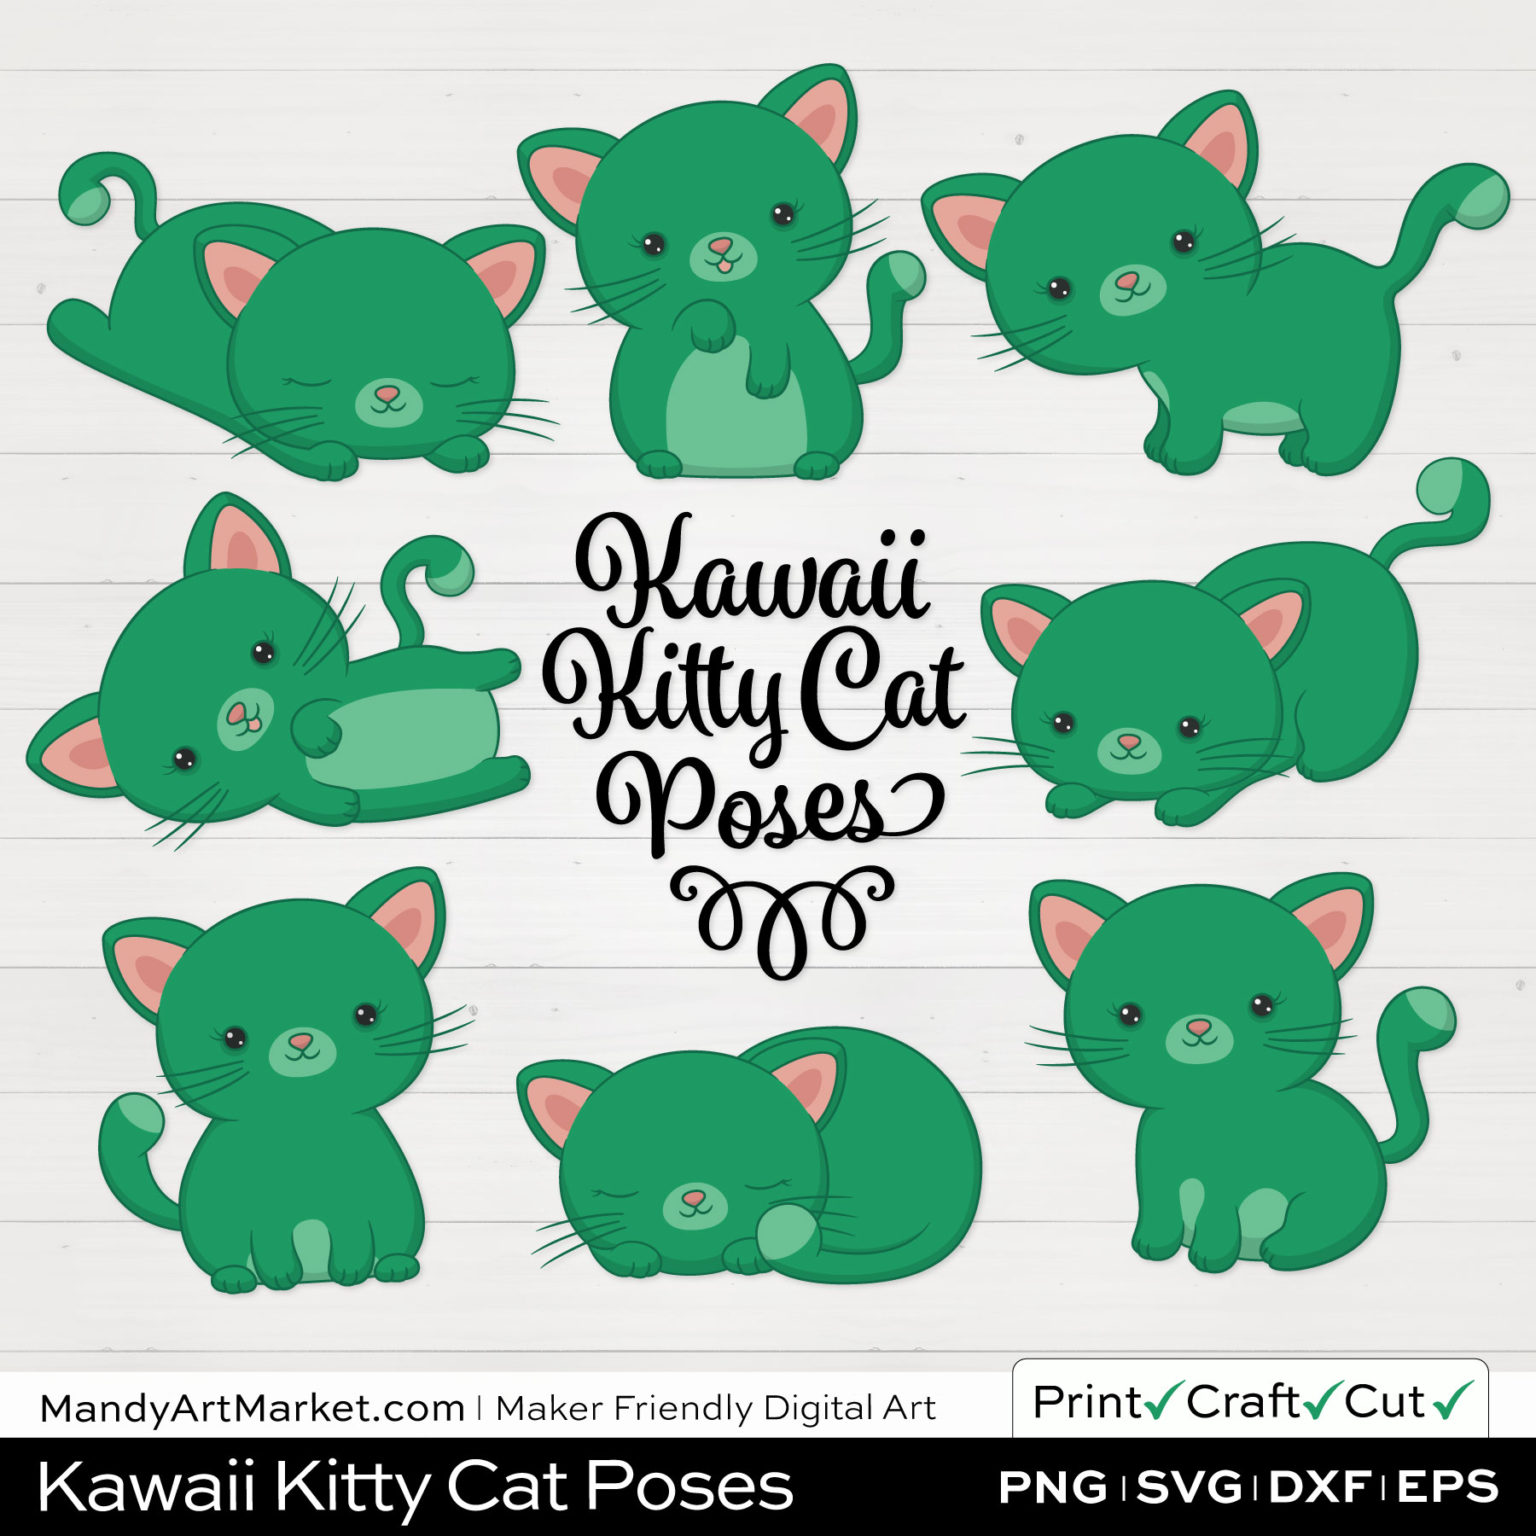 Jade Green Kawaii Kitty Cat Poses Clipart on White Background